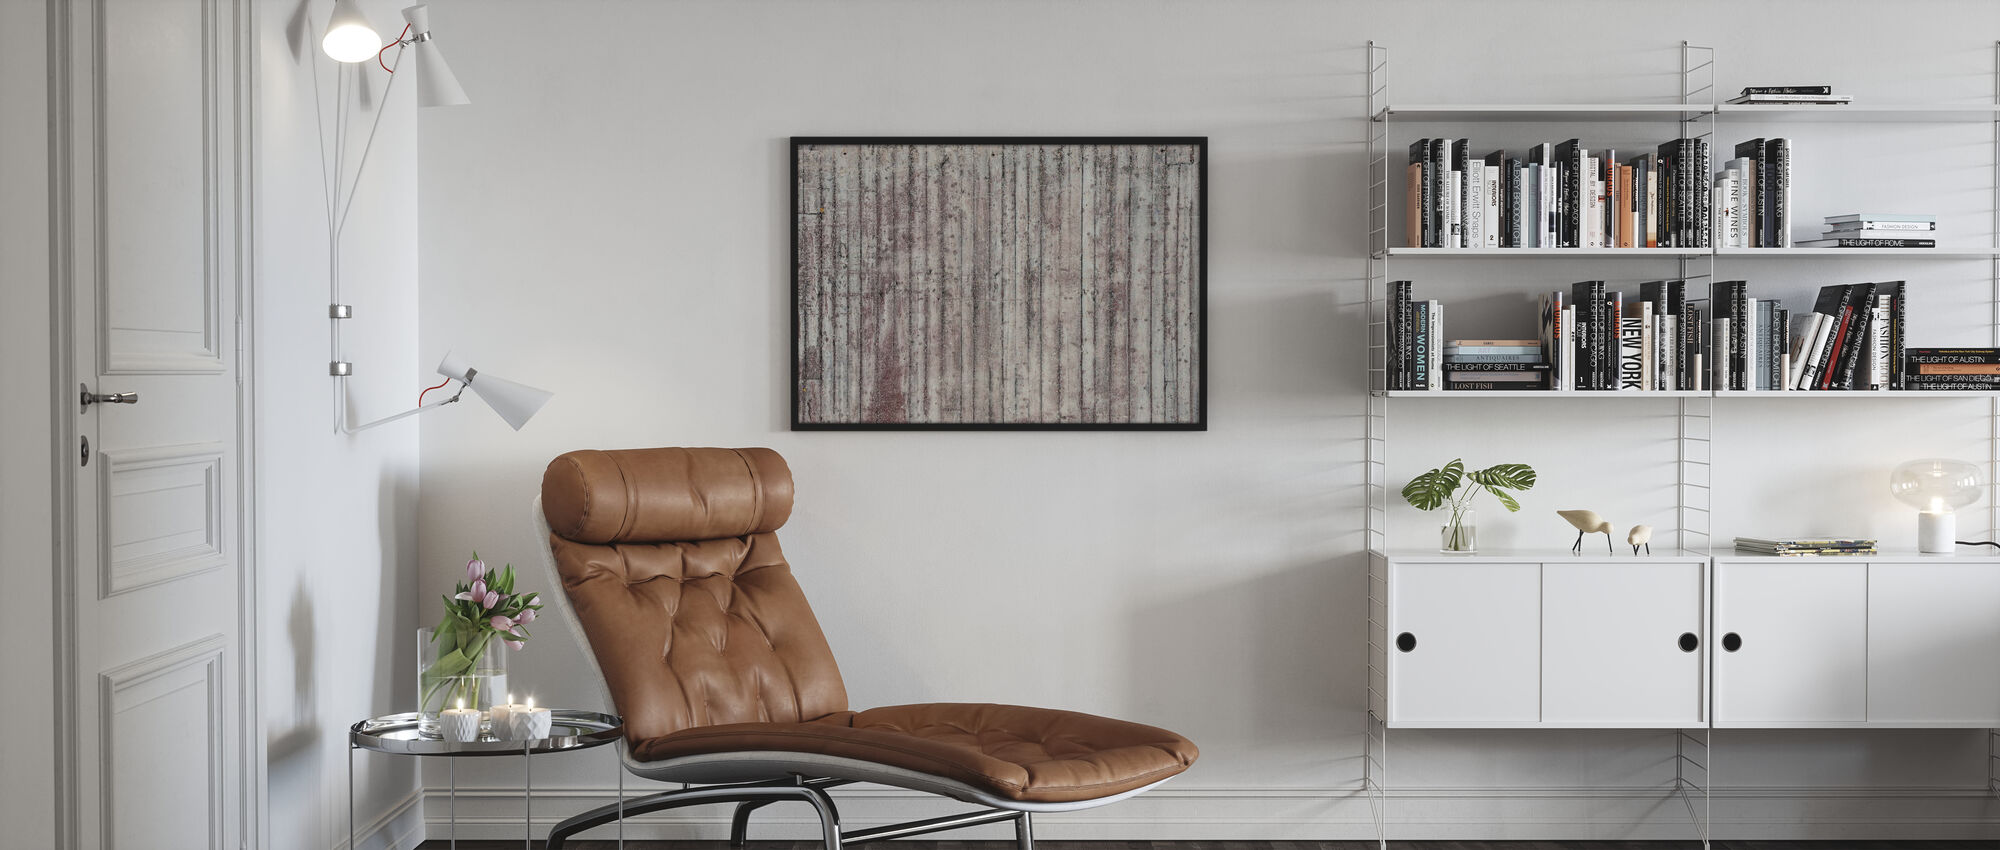 Concrete Wooden Wall - Poster - Living Room